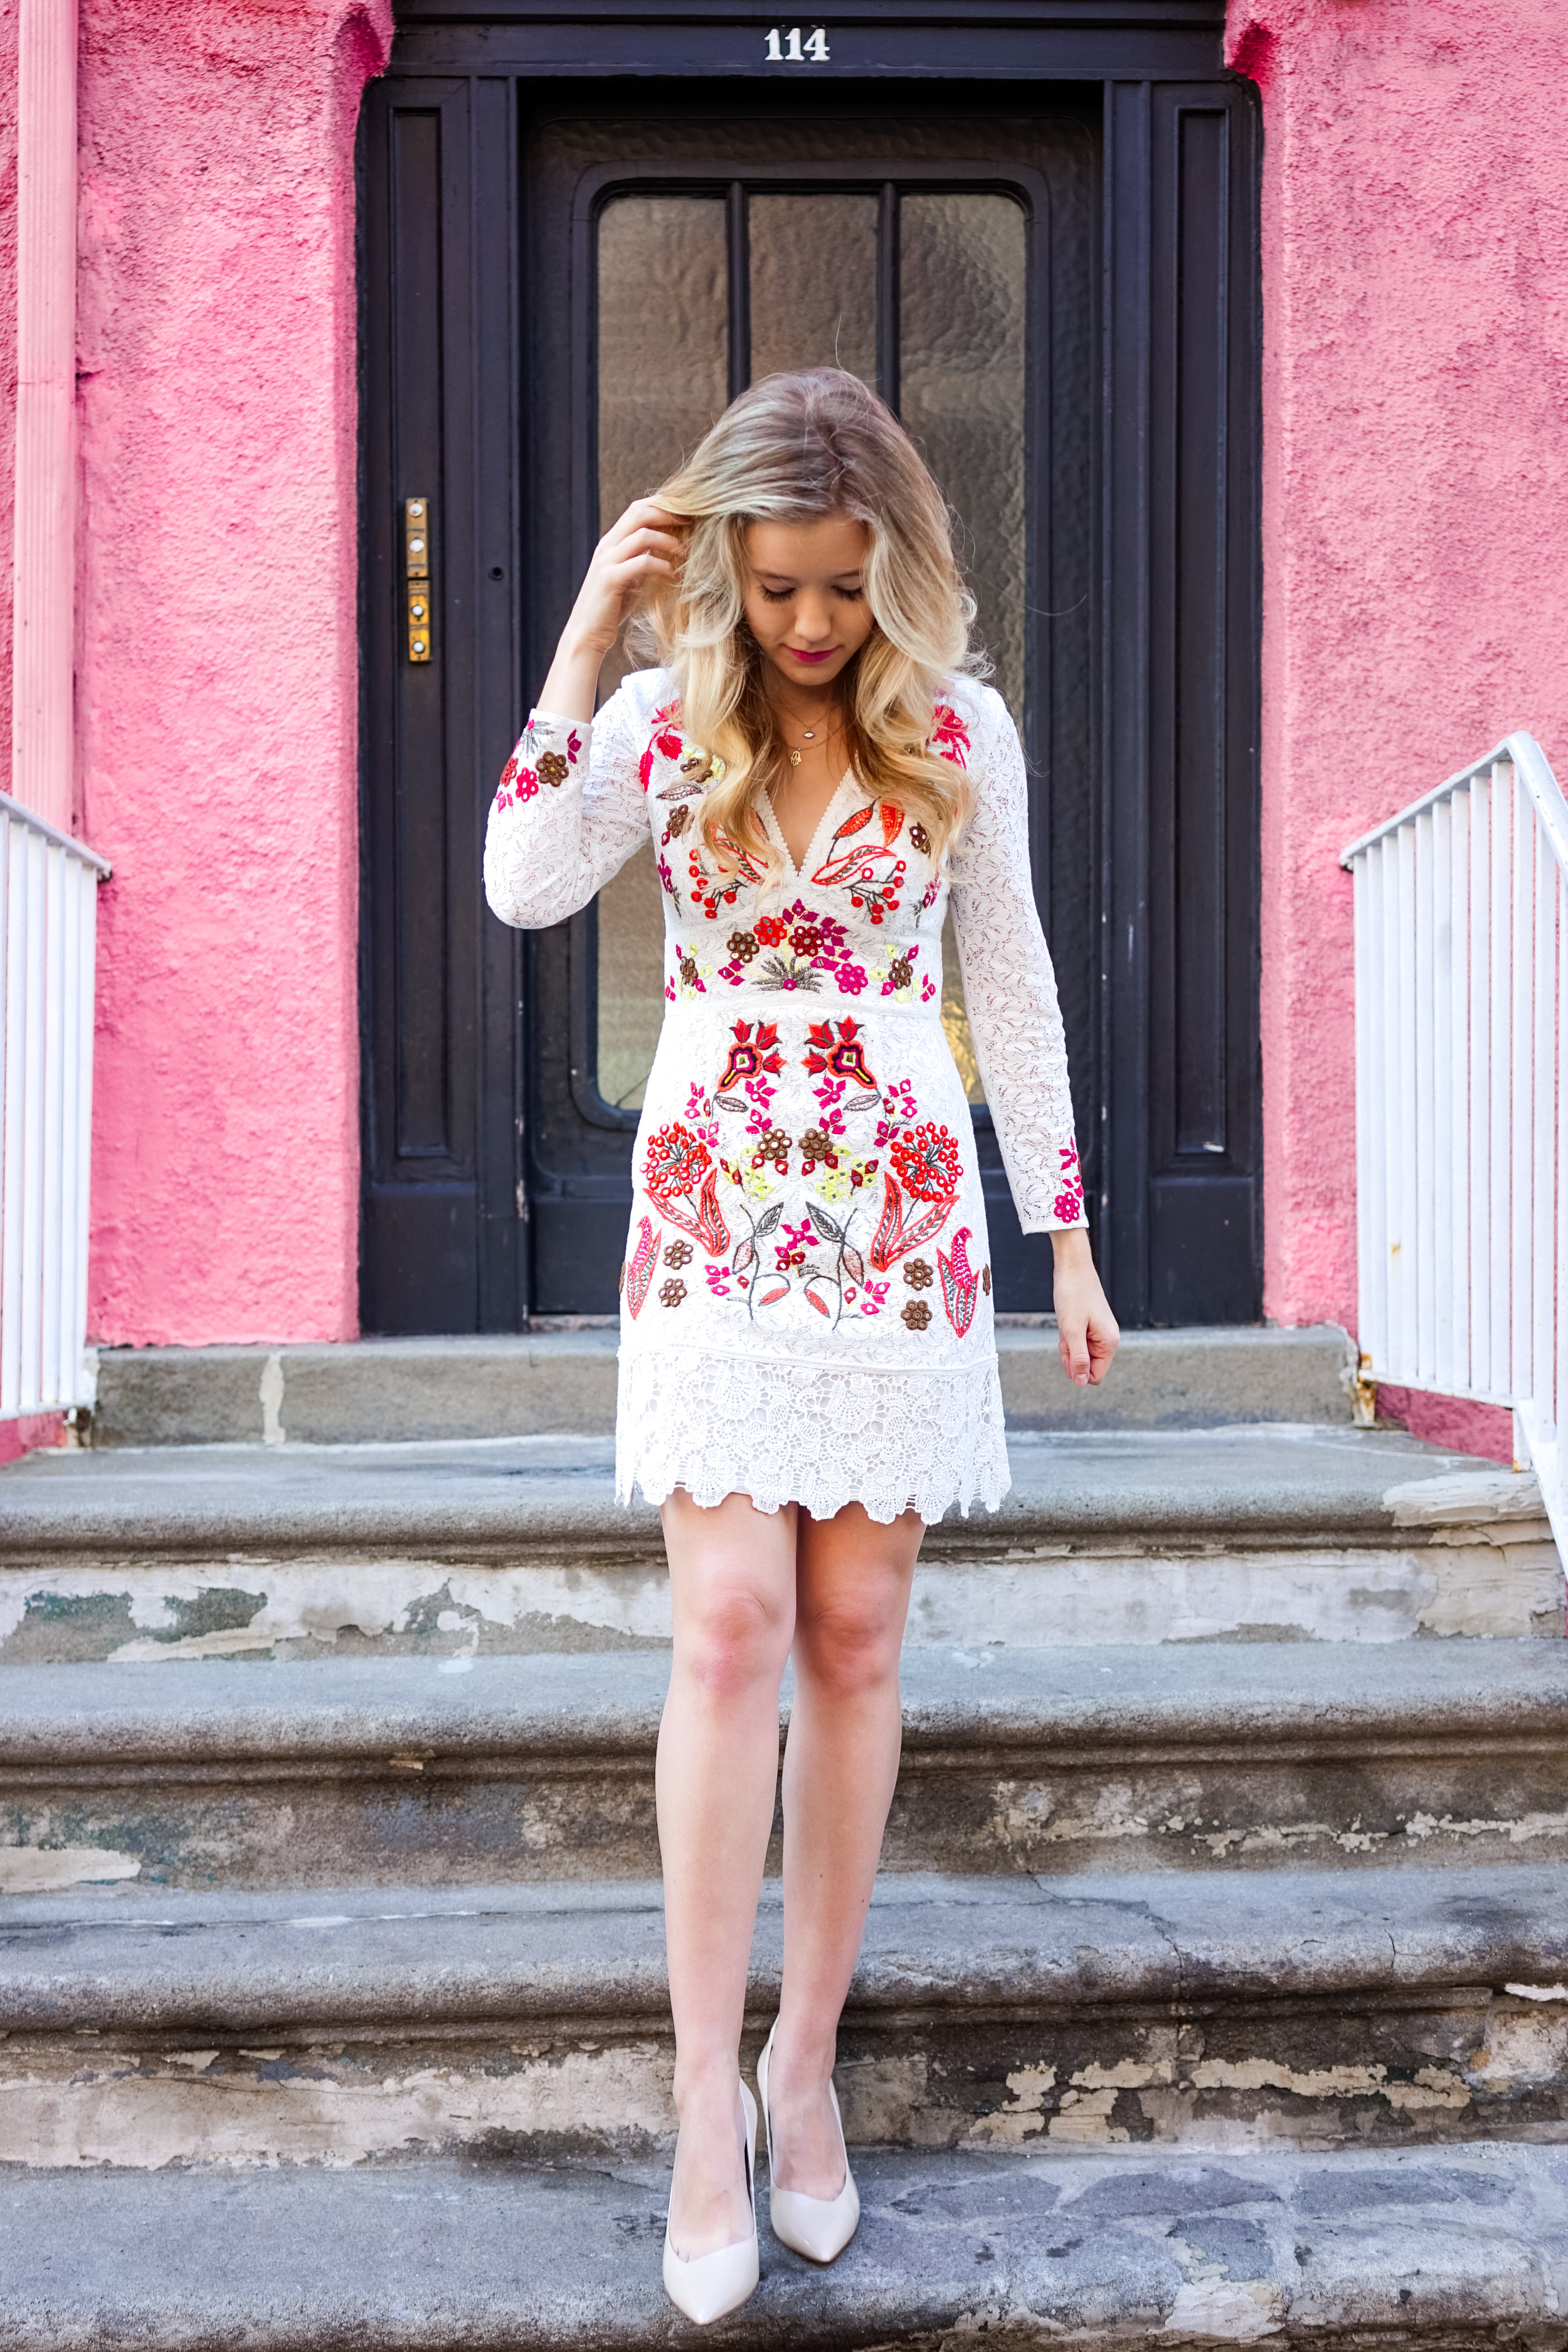 West Village NYC Embroidered Lace Outfit-24.jpg